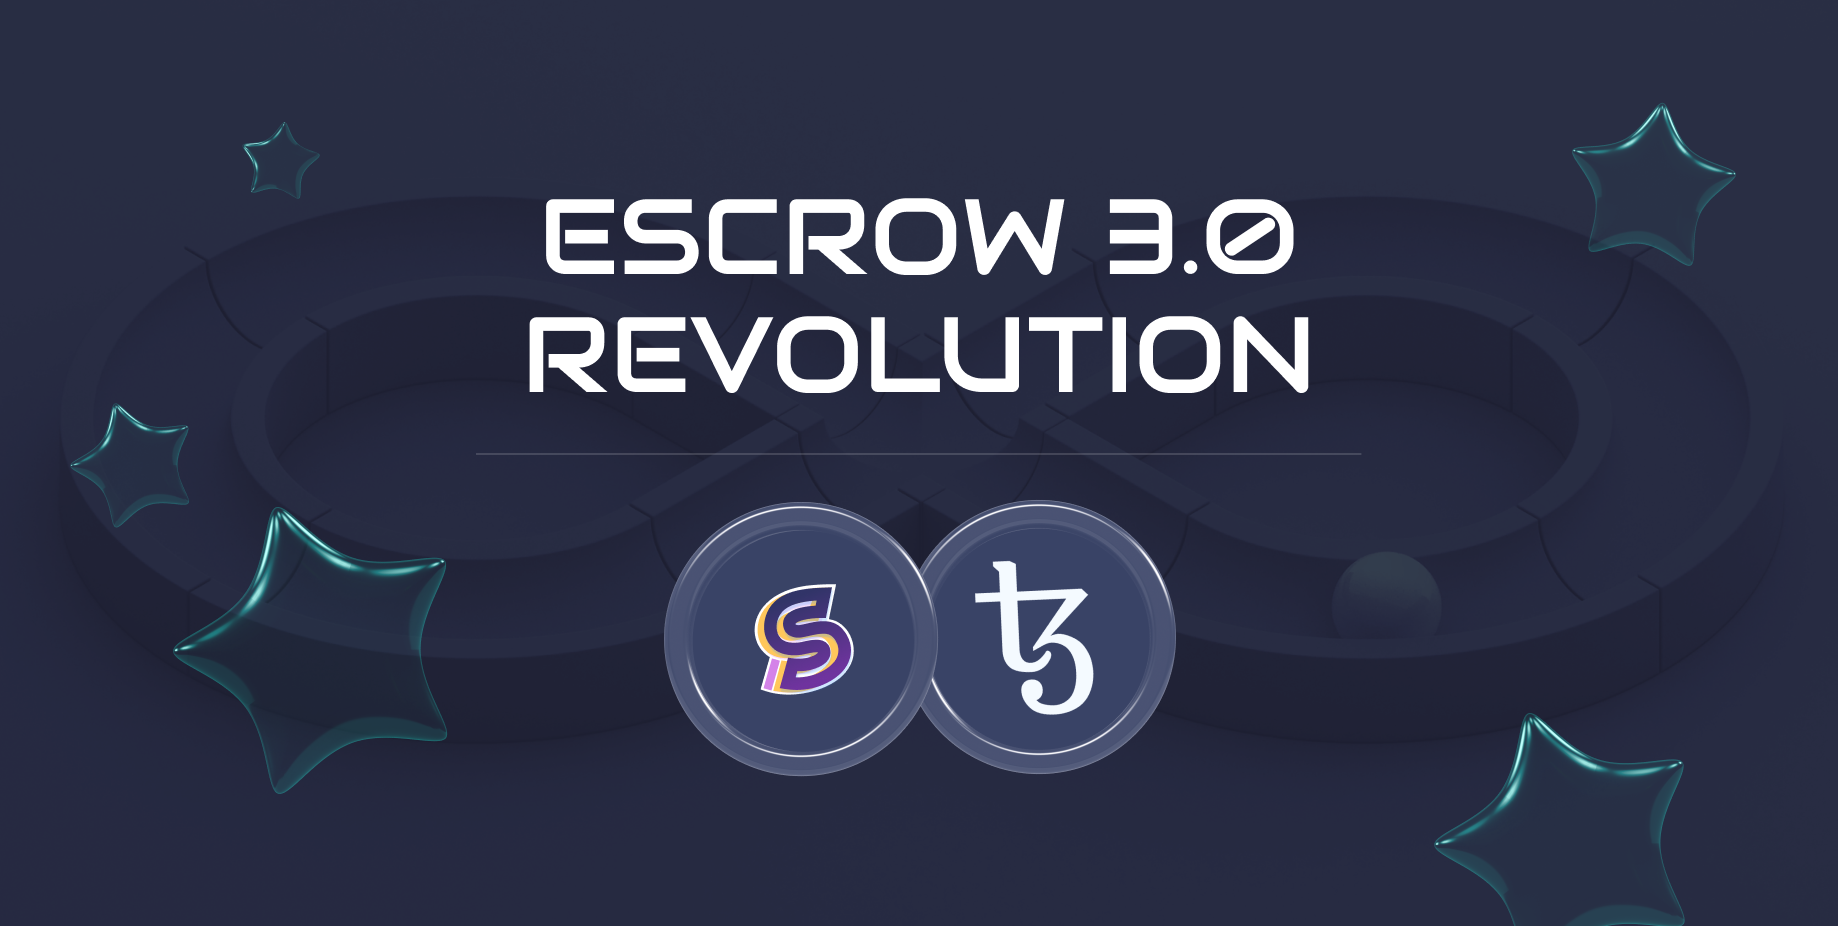 /how-escrow-smart-contracts-could-change-online-transactions-forever-q71x37p9 feature image